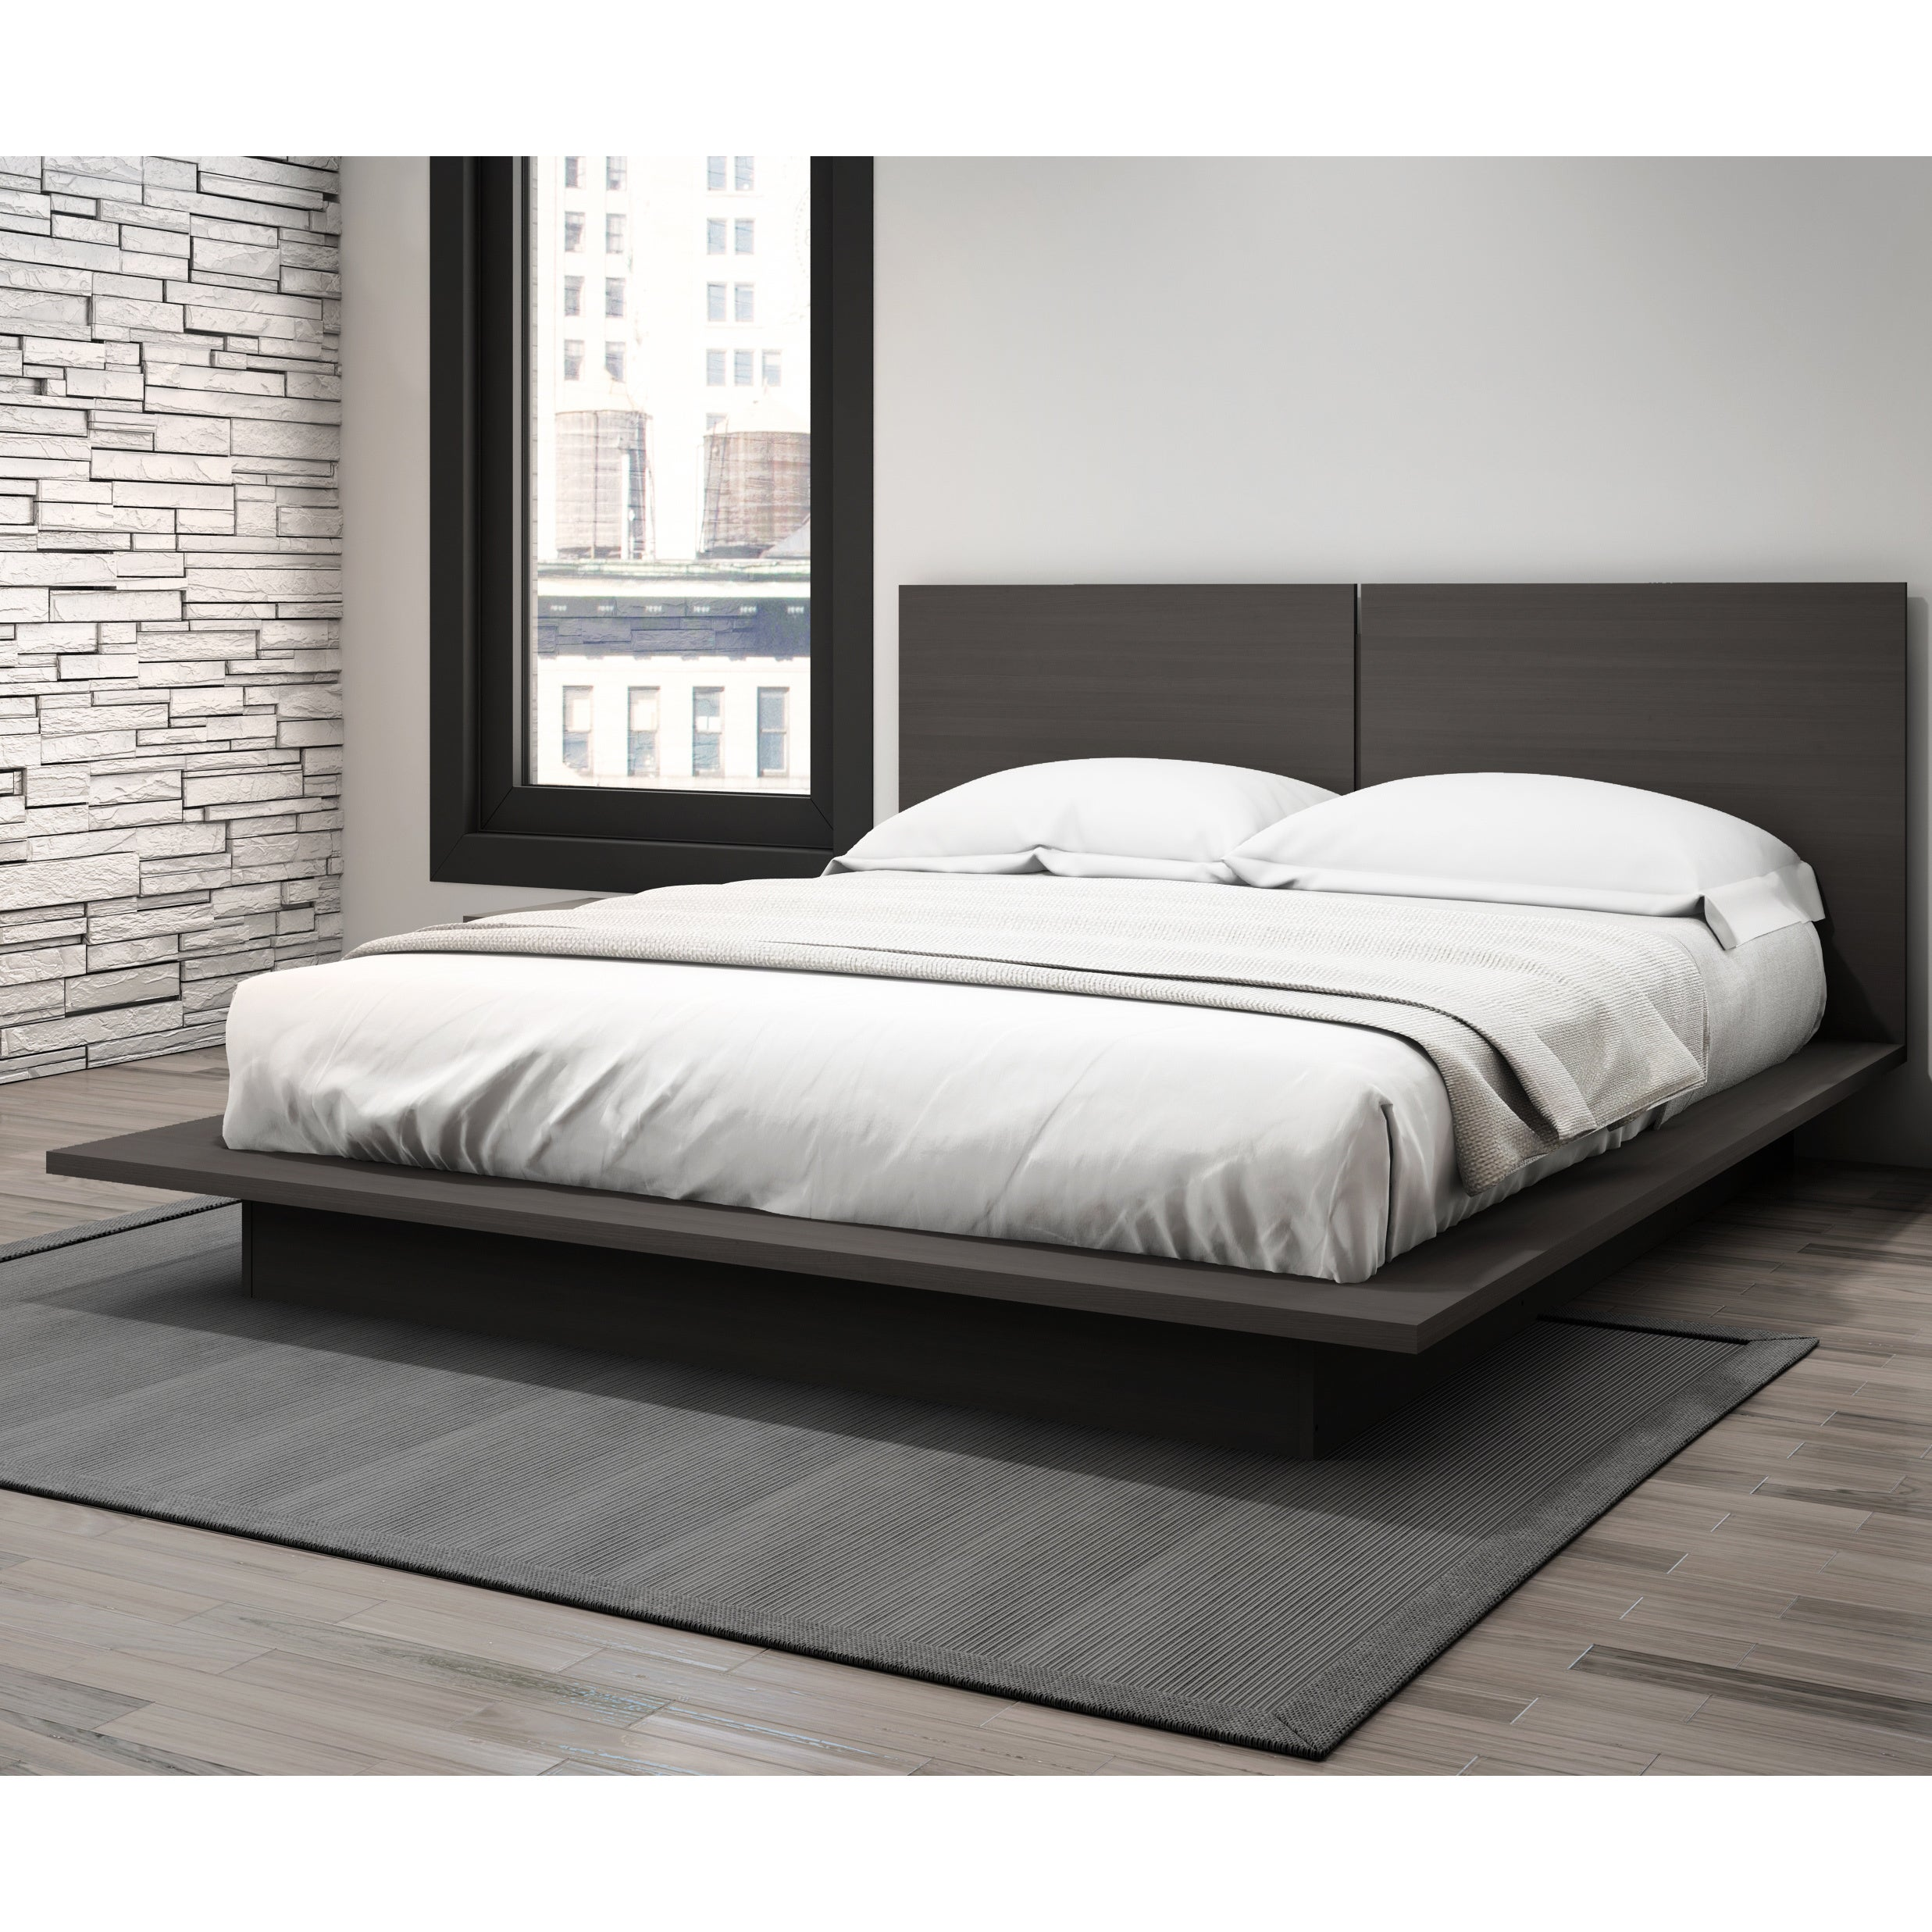 Help. Stellar Home Furniture Modena Queen Platform Bed Charcoal Gray   eBay